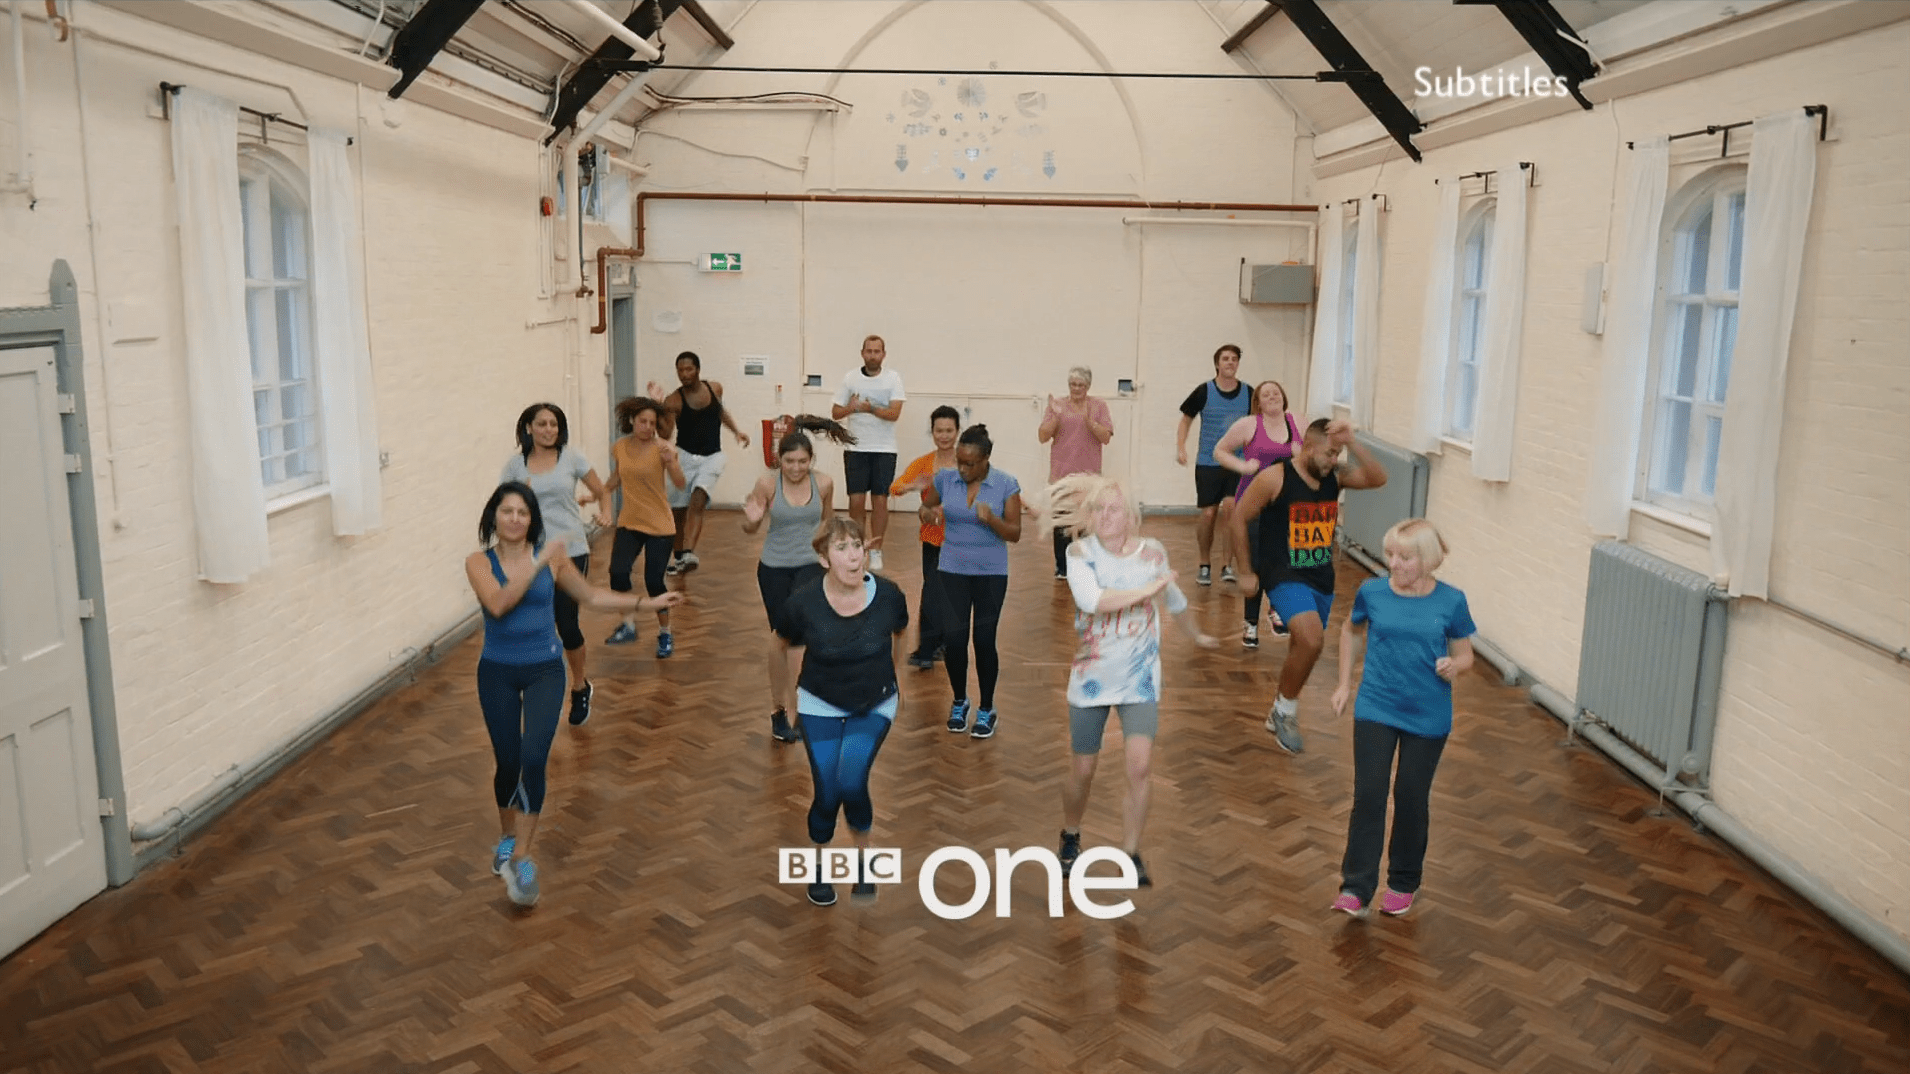 PICTURED: BBC One ident - Exercise Class, Avonmouth.